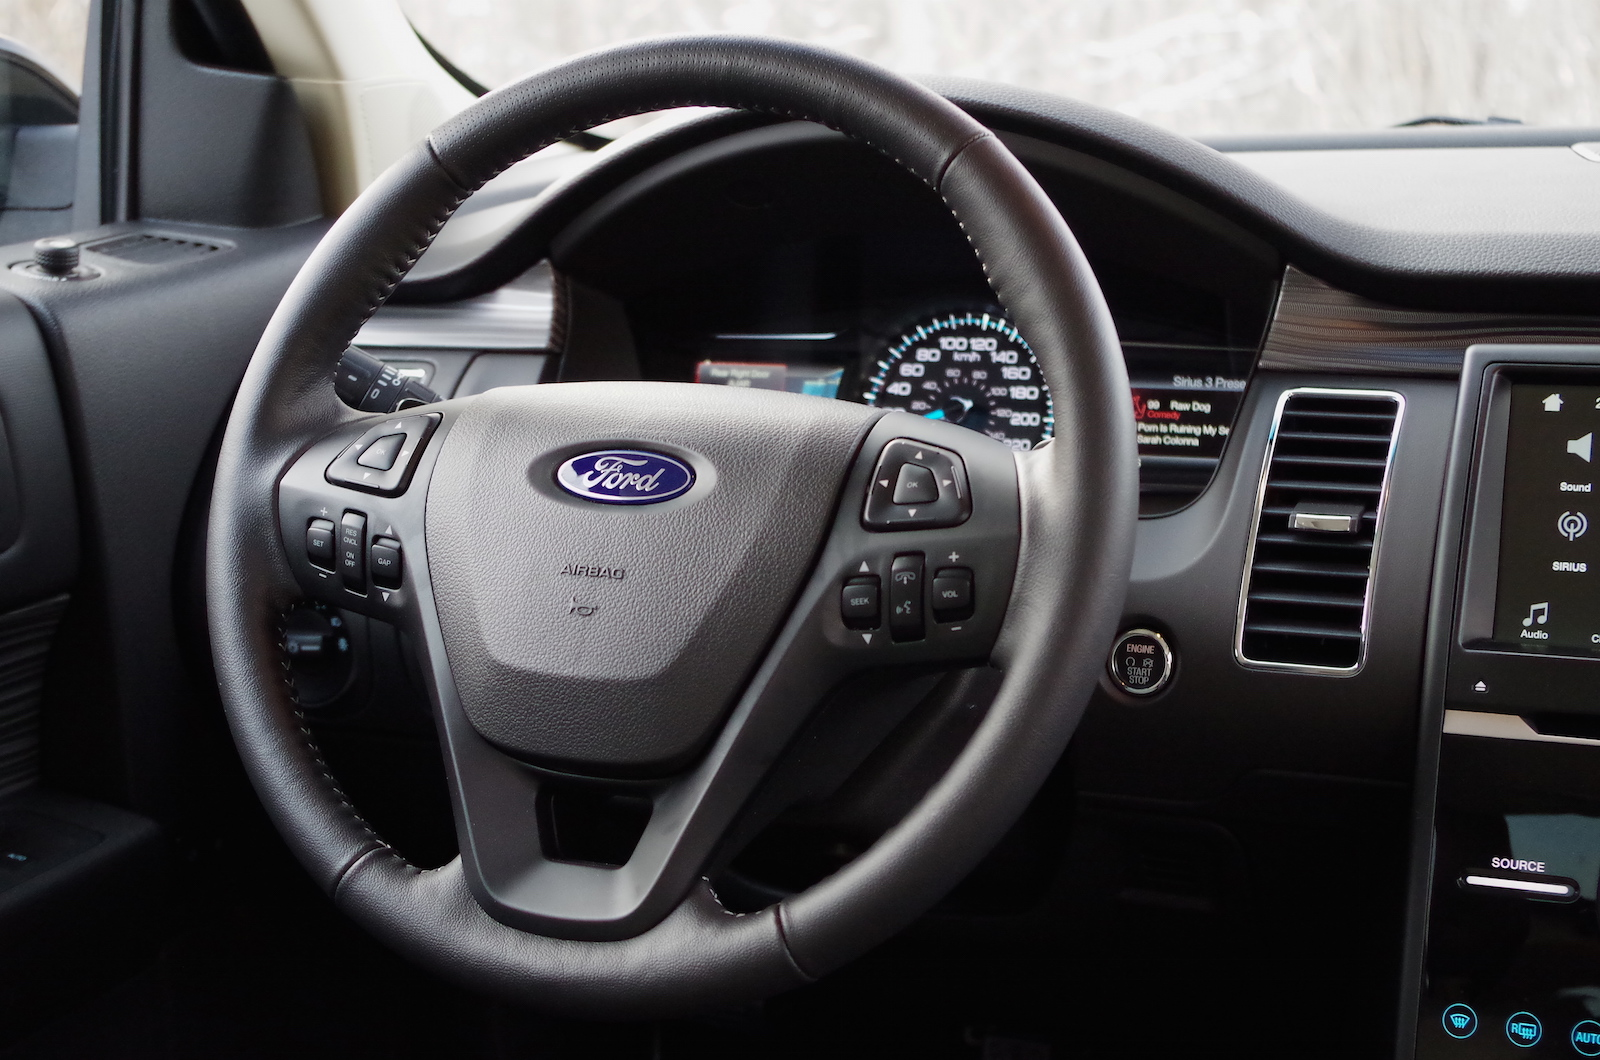 ford flex heated steering wheel 2018 2019 ford reviews. Black Bedroom Furniture Sets. Home Design Ideas